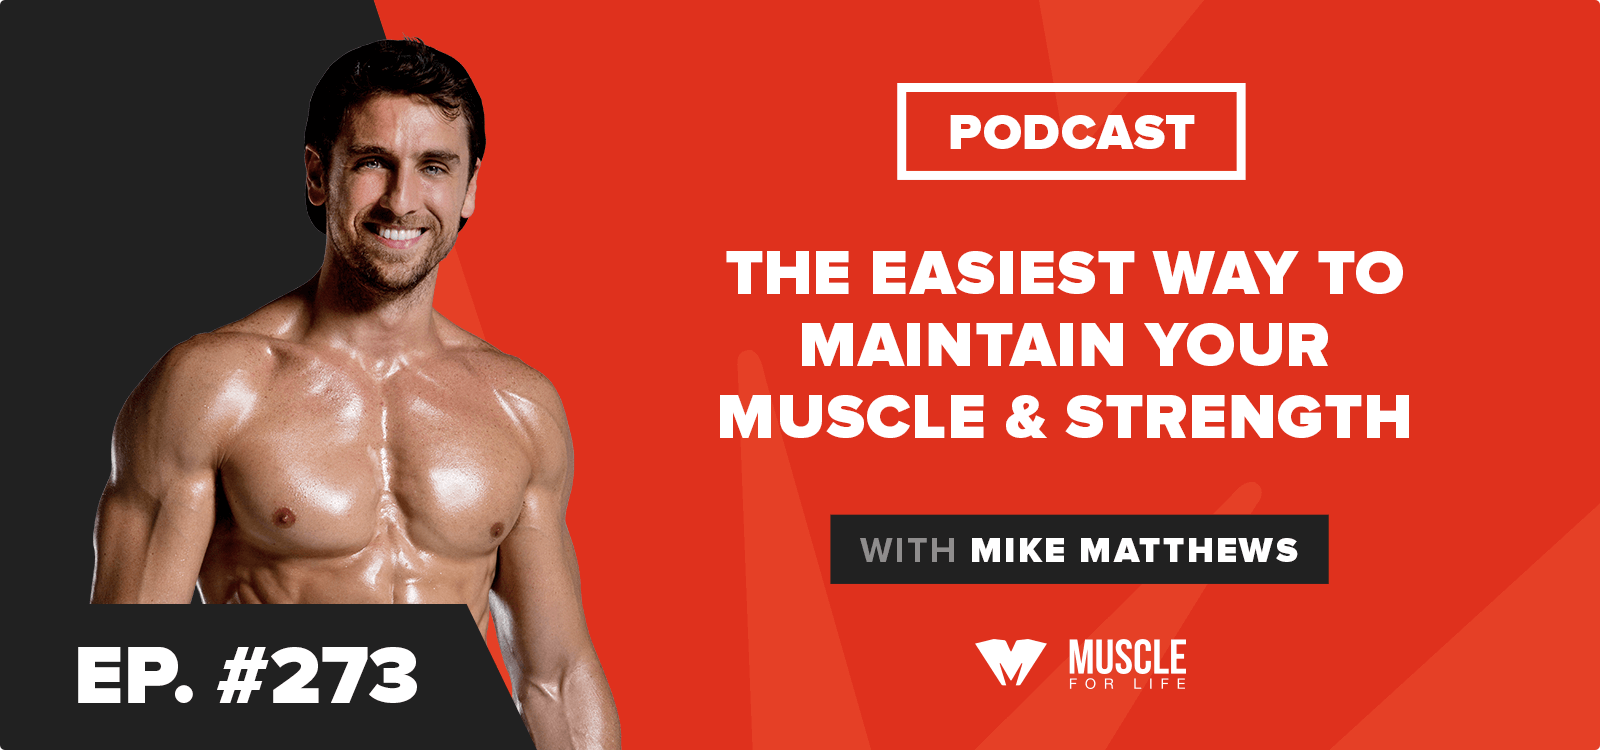 The Easiest Way to Maintain Your Muscle & Strength